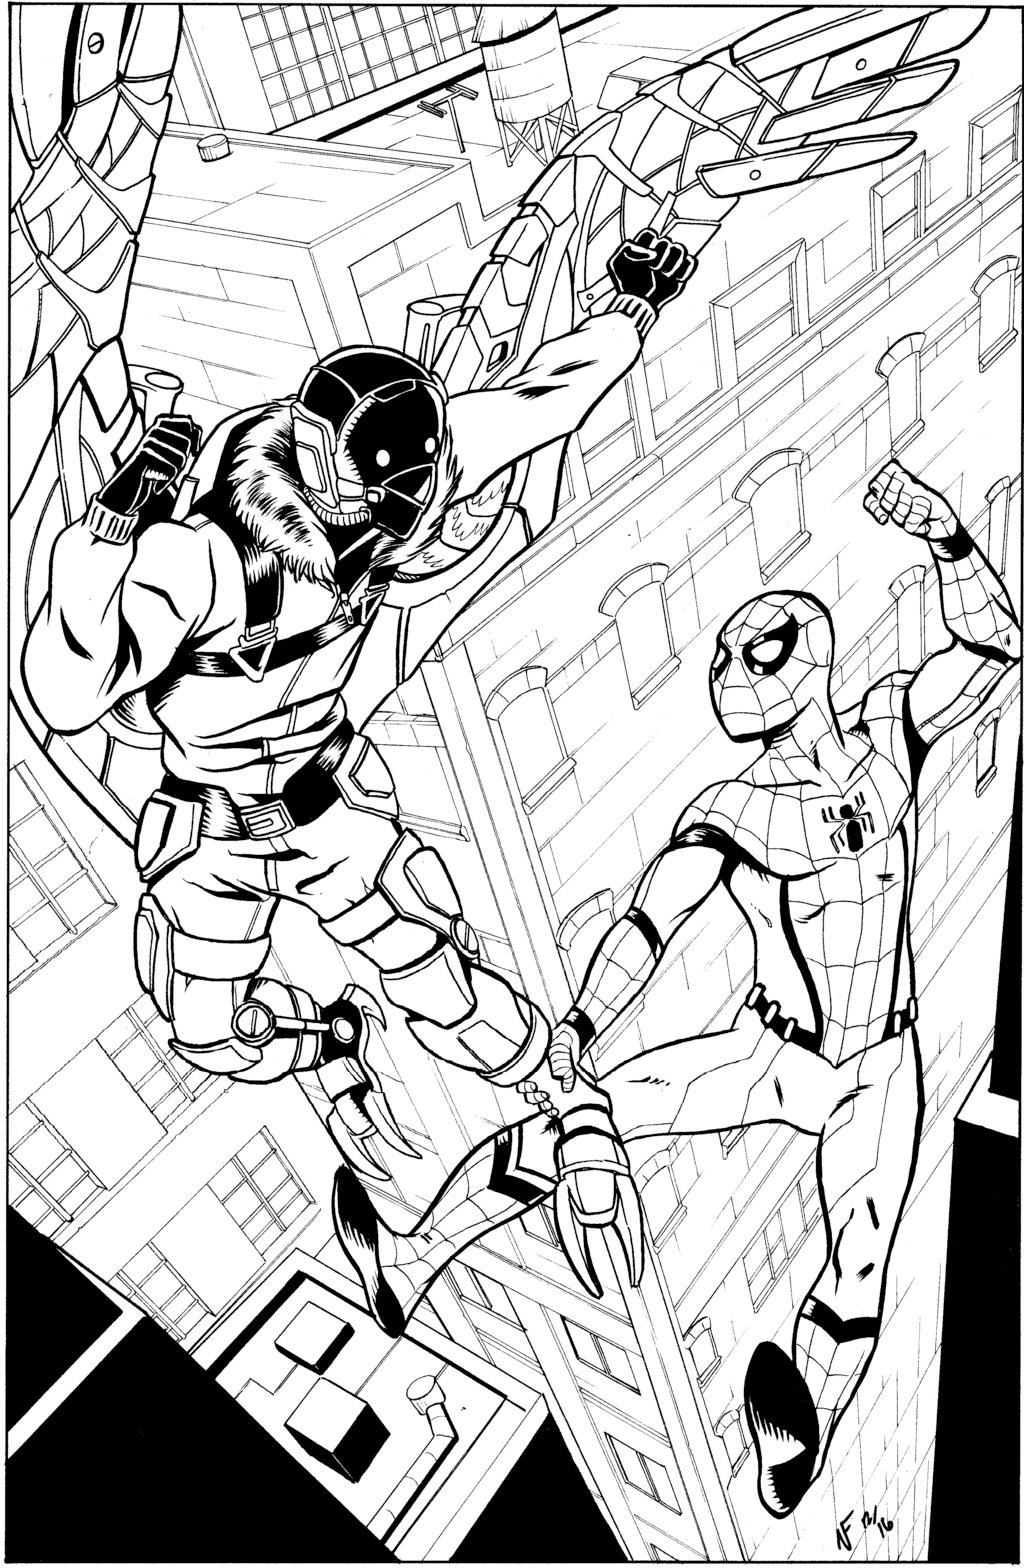 spider_man_homecoming_inks_by_crimeroyale-dauunqy